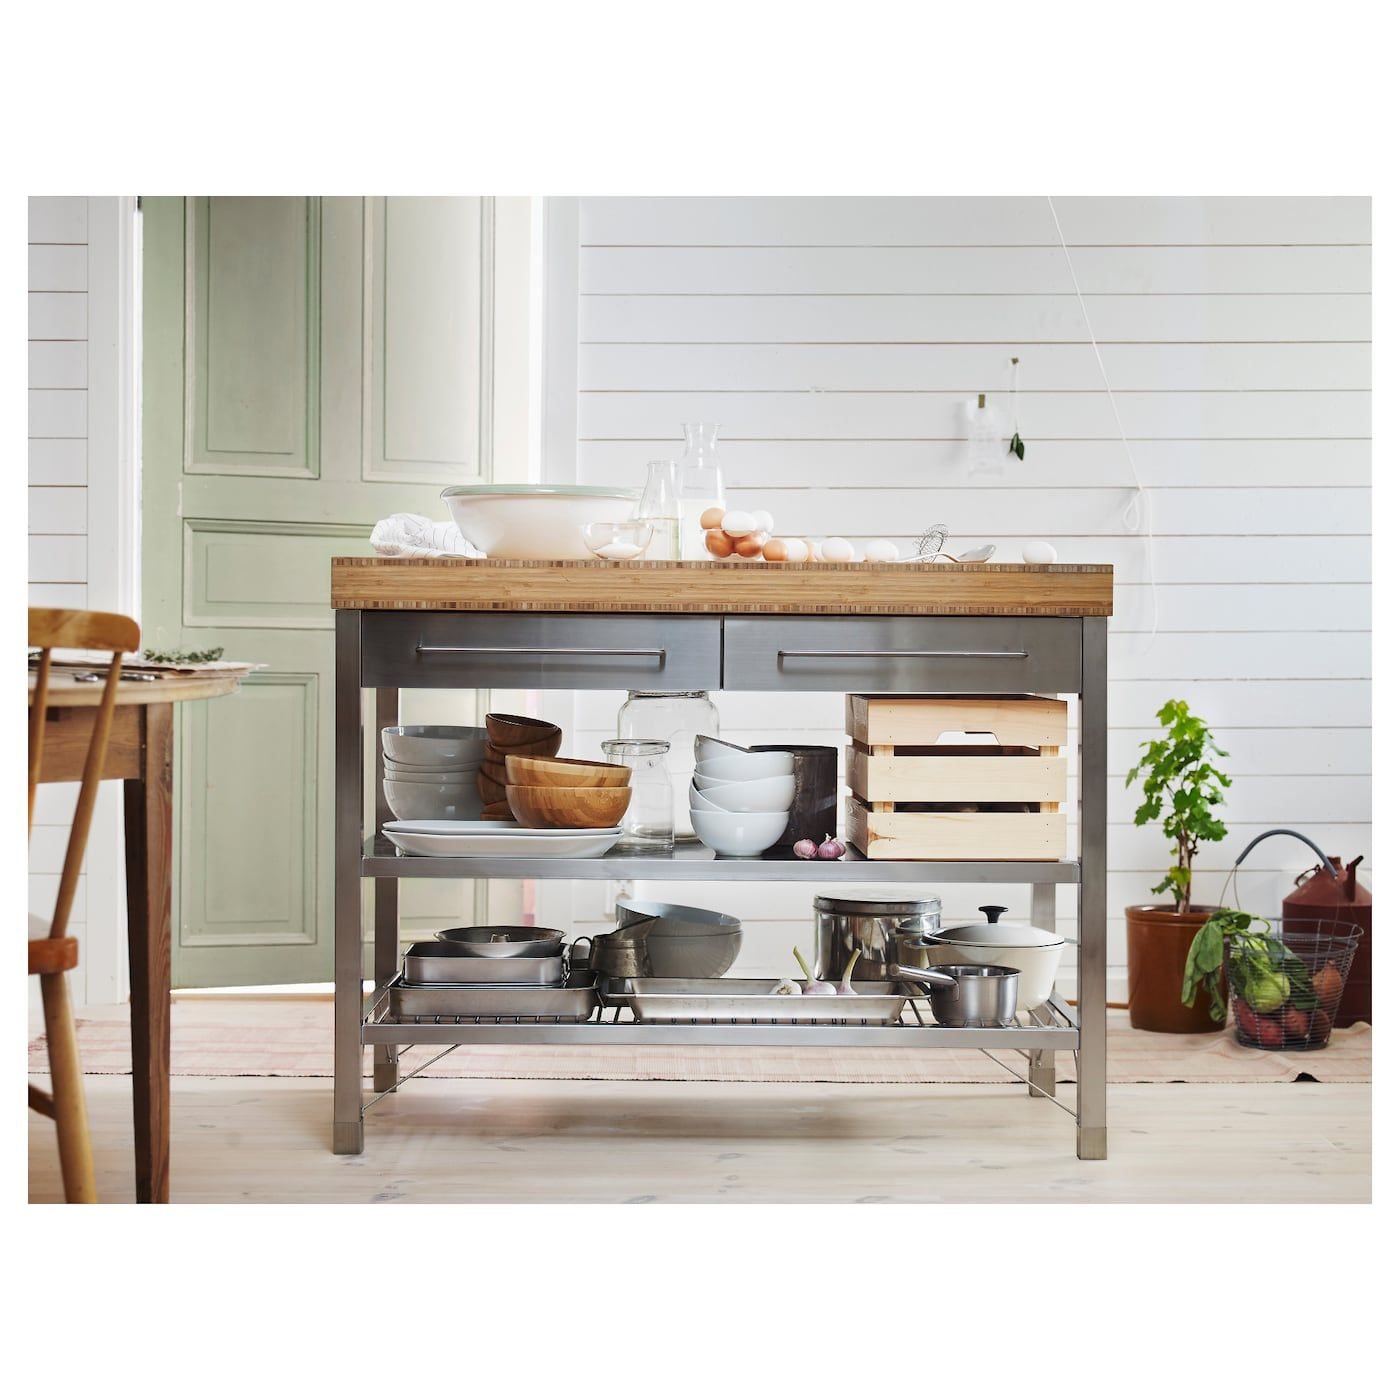 RIMFORSA stainless steel, bamboo, Work bench - IKEA  Ikea kitchen